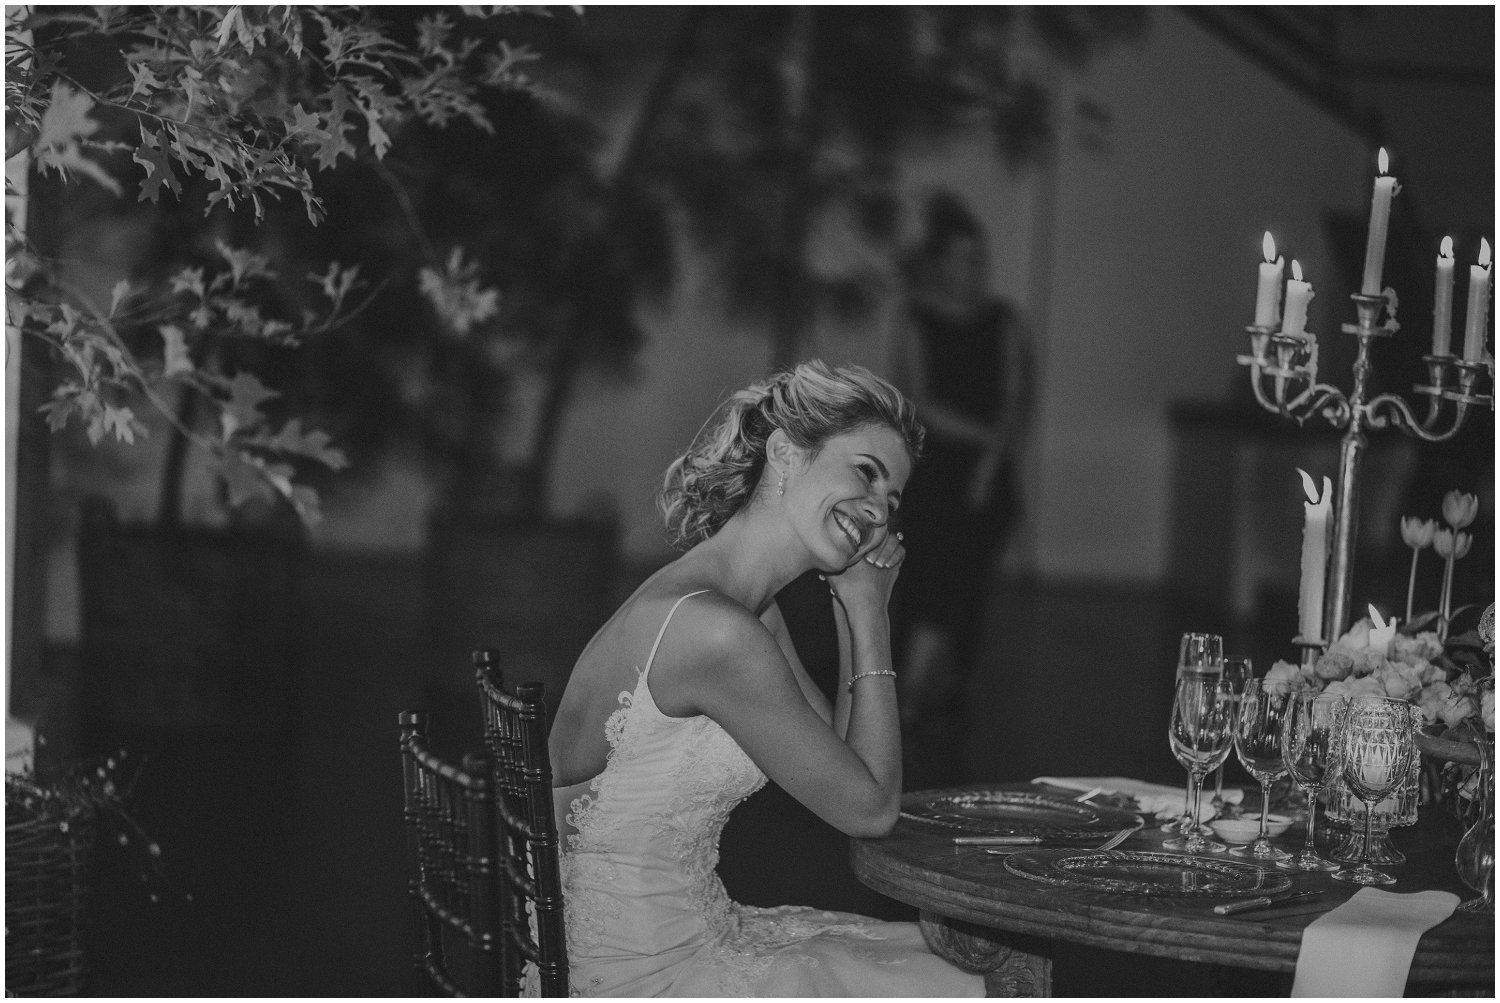 Top Artistic Creative Documentary Wedding Photographer Cape Town South Africa Rue Kruger_0178.jpg